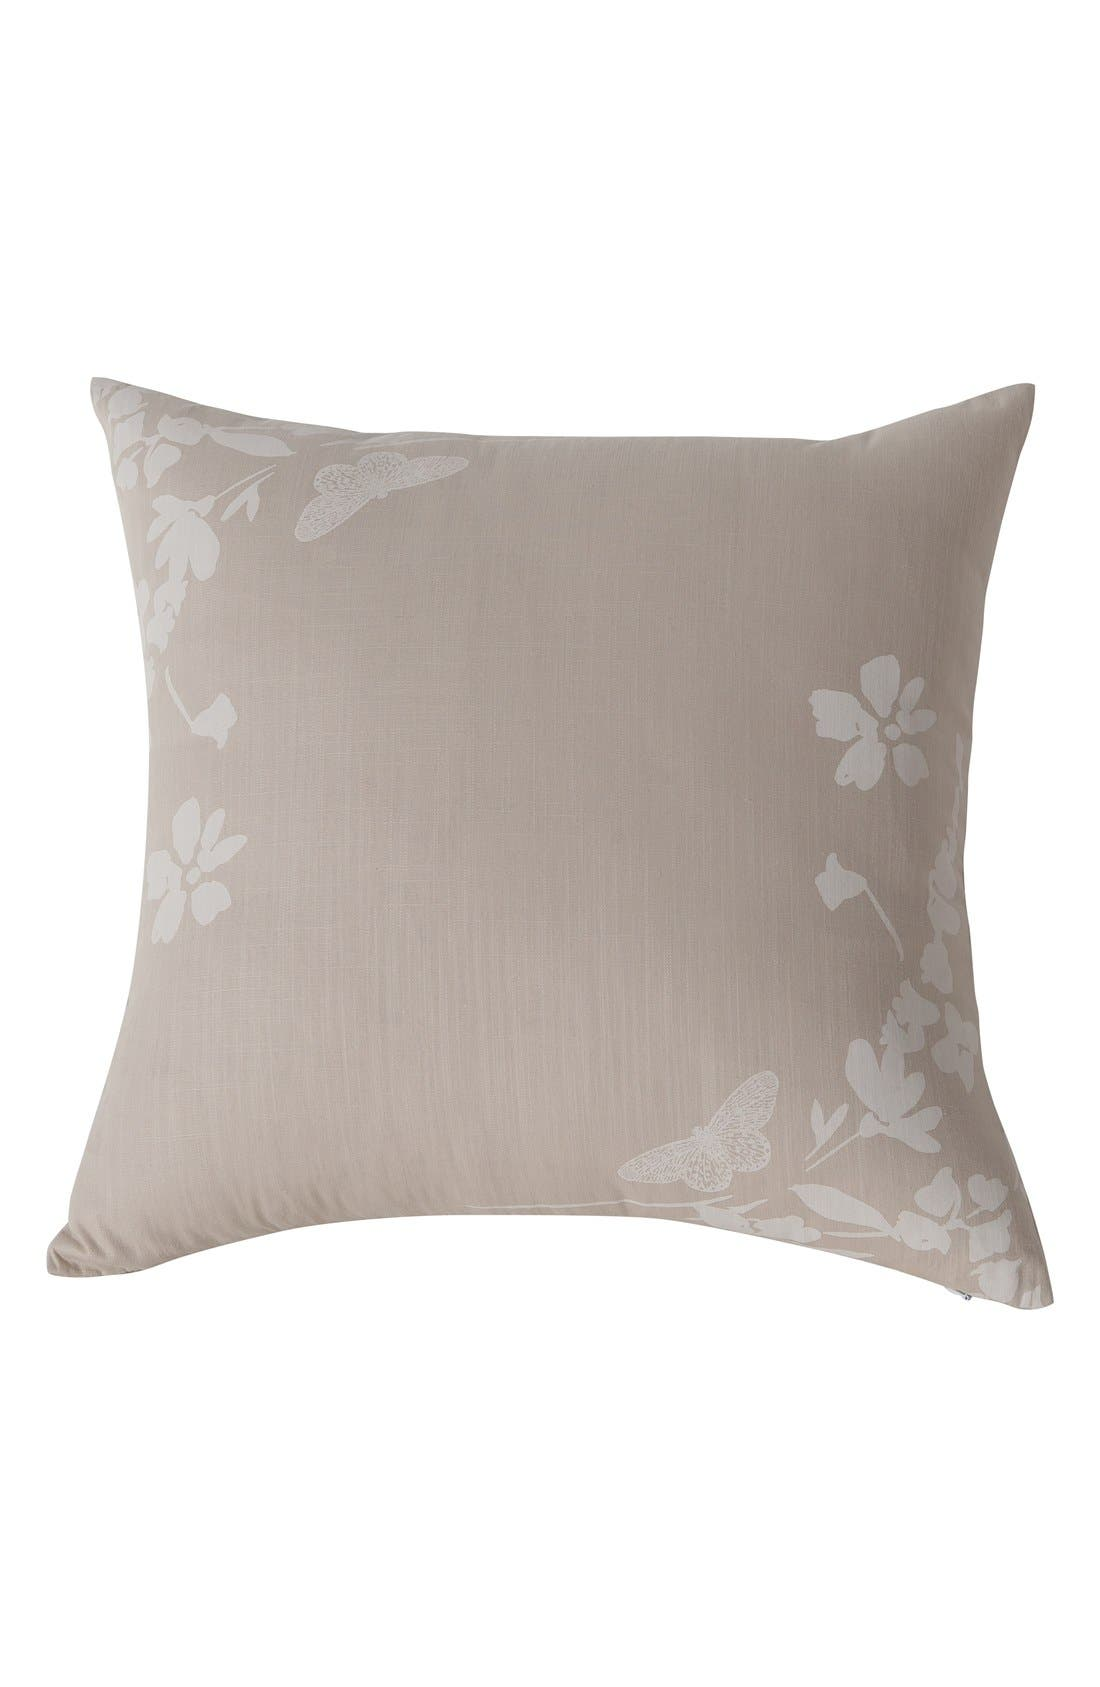 kensie 'Laramie' Accent Pillow